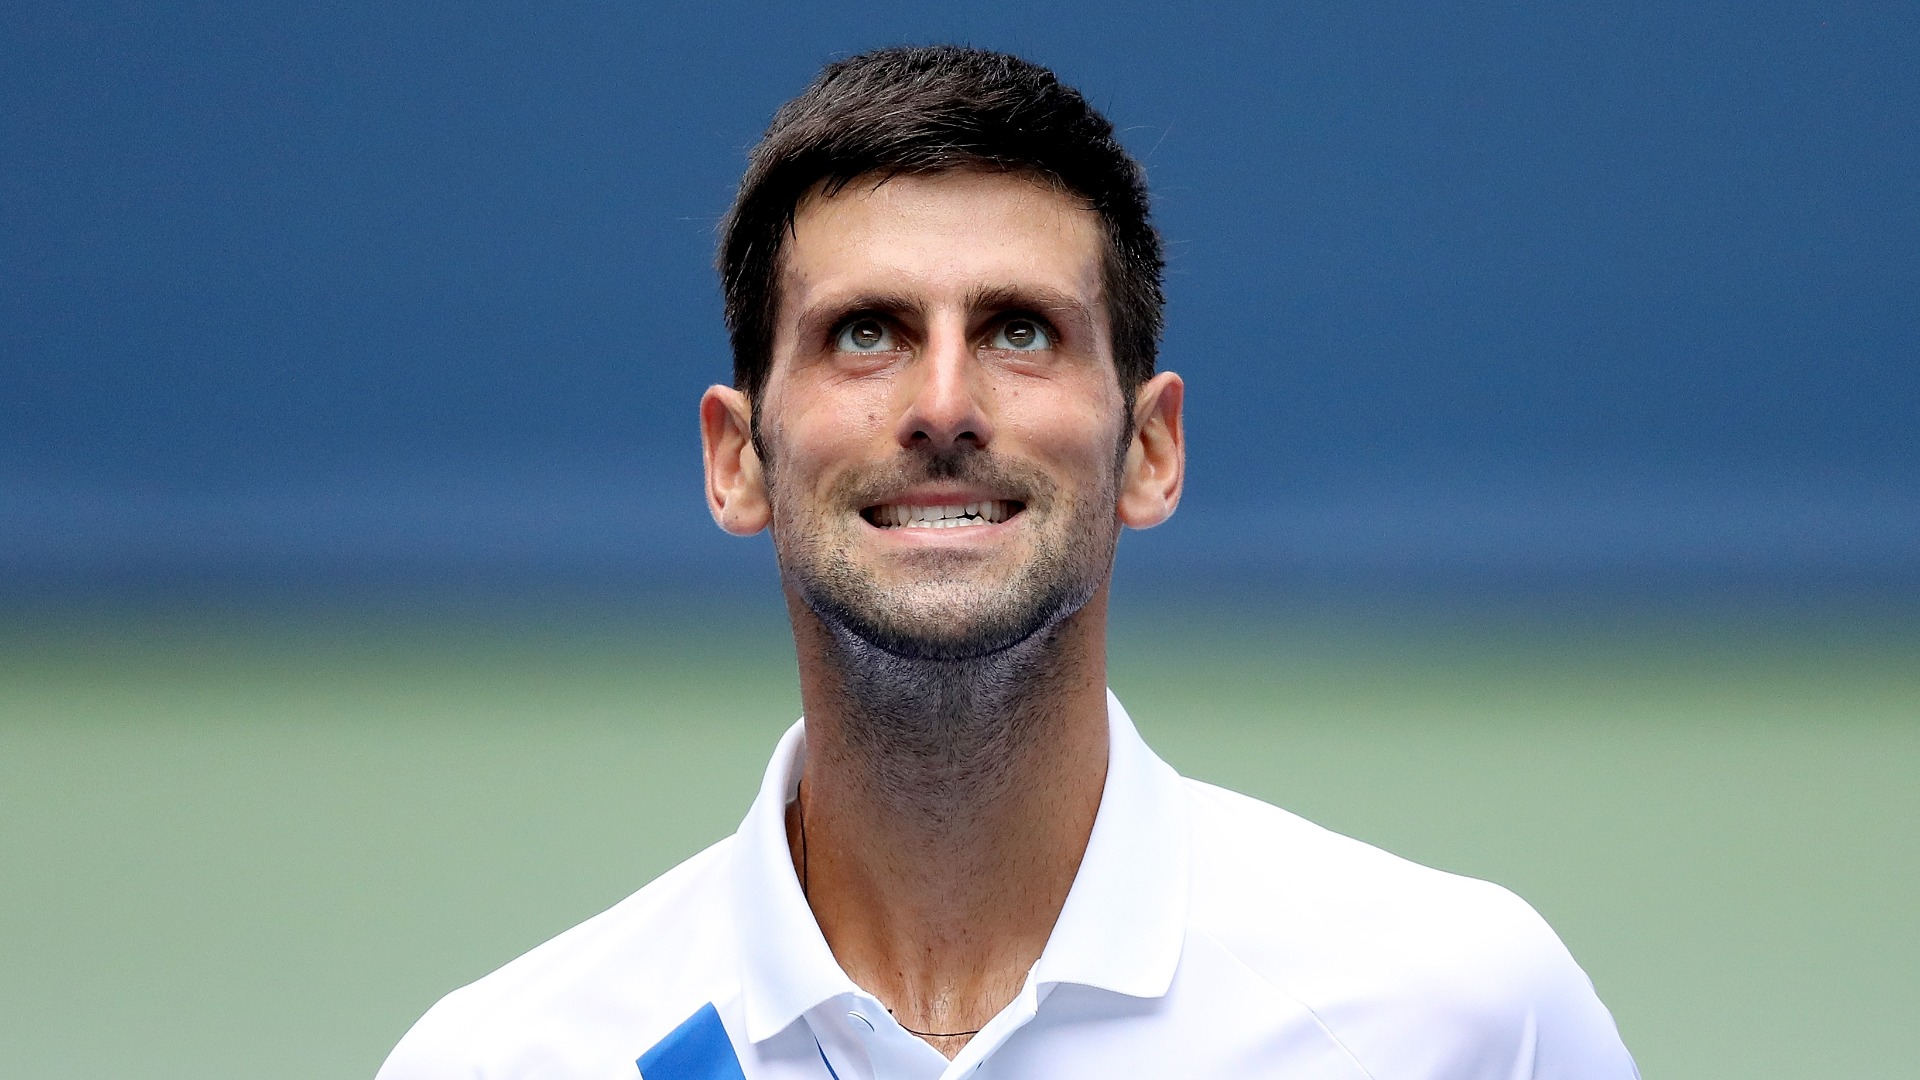 Djokovic to miss Miami Open as he joins Nadal and Federer in skipping Masters 1000 event